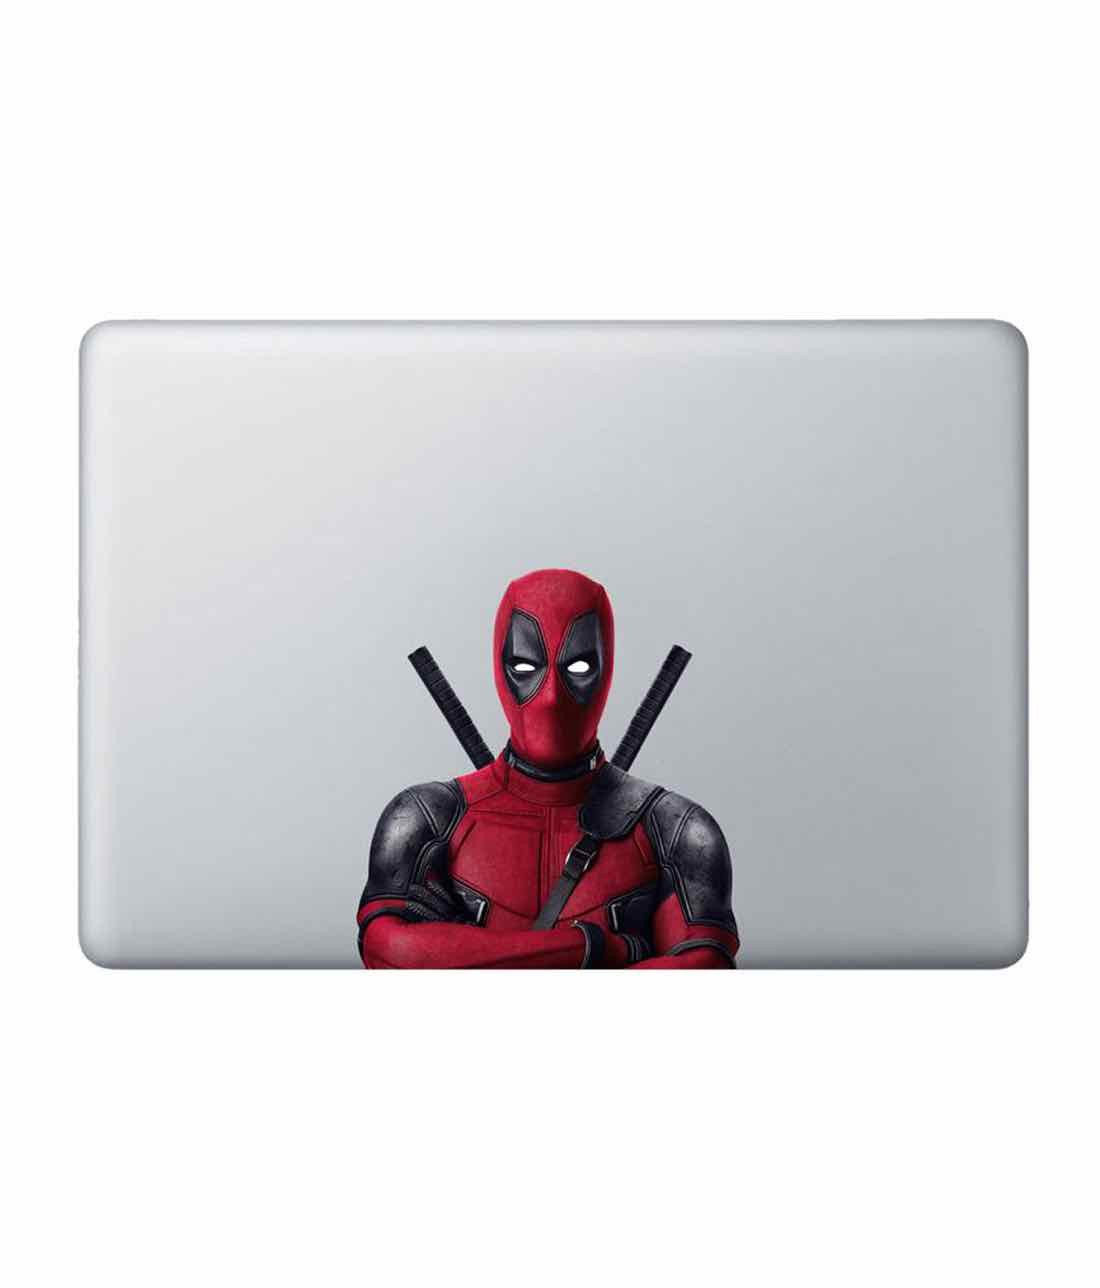 Deadpool Stance Laptop Decal by Macmerise -Macmerise - India - www.superherotoystore.com